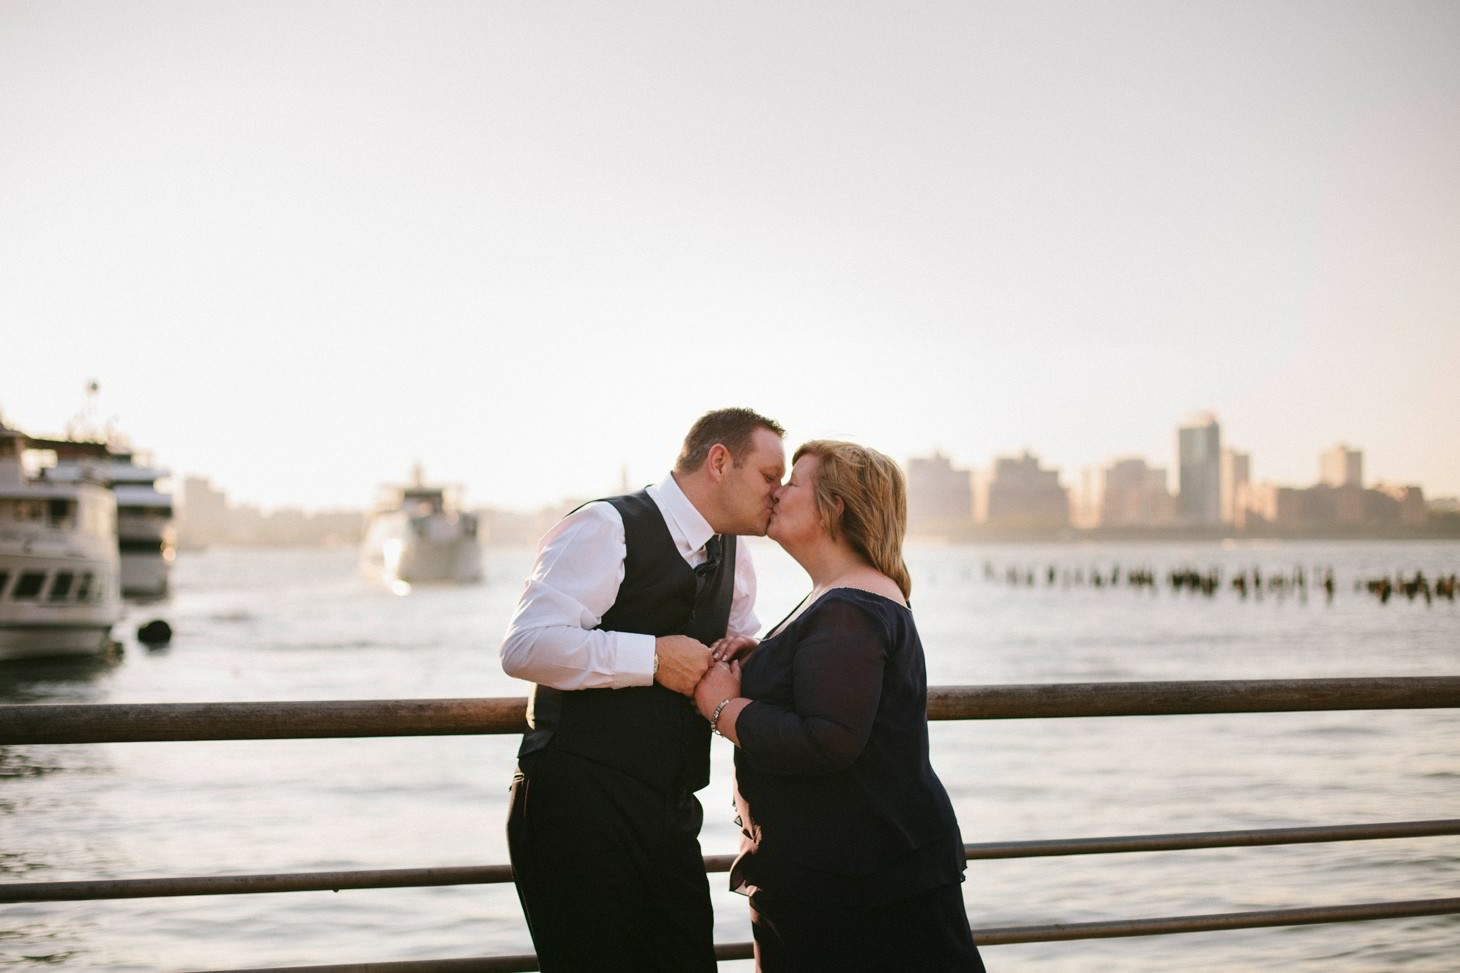 021-nyc-wedding-photographer-smitten-chickens-elope-on-a-boat-chelsea-piers-hornblower-cruises.jpg